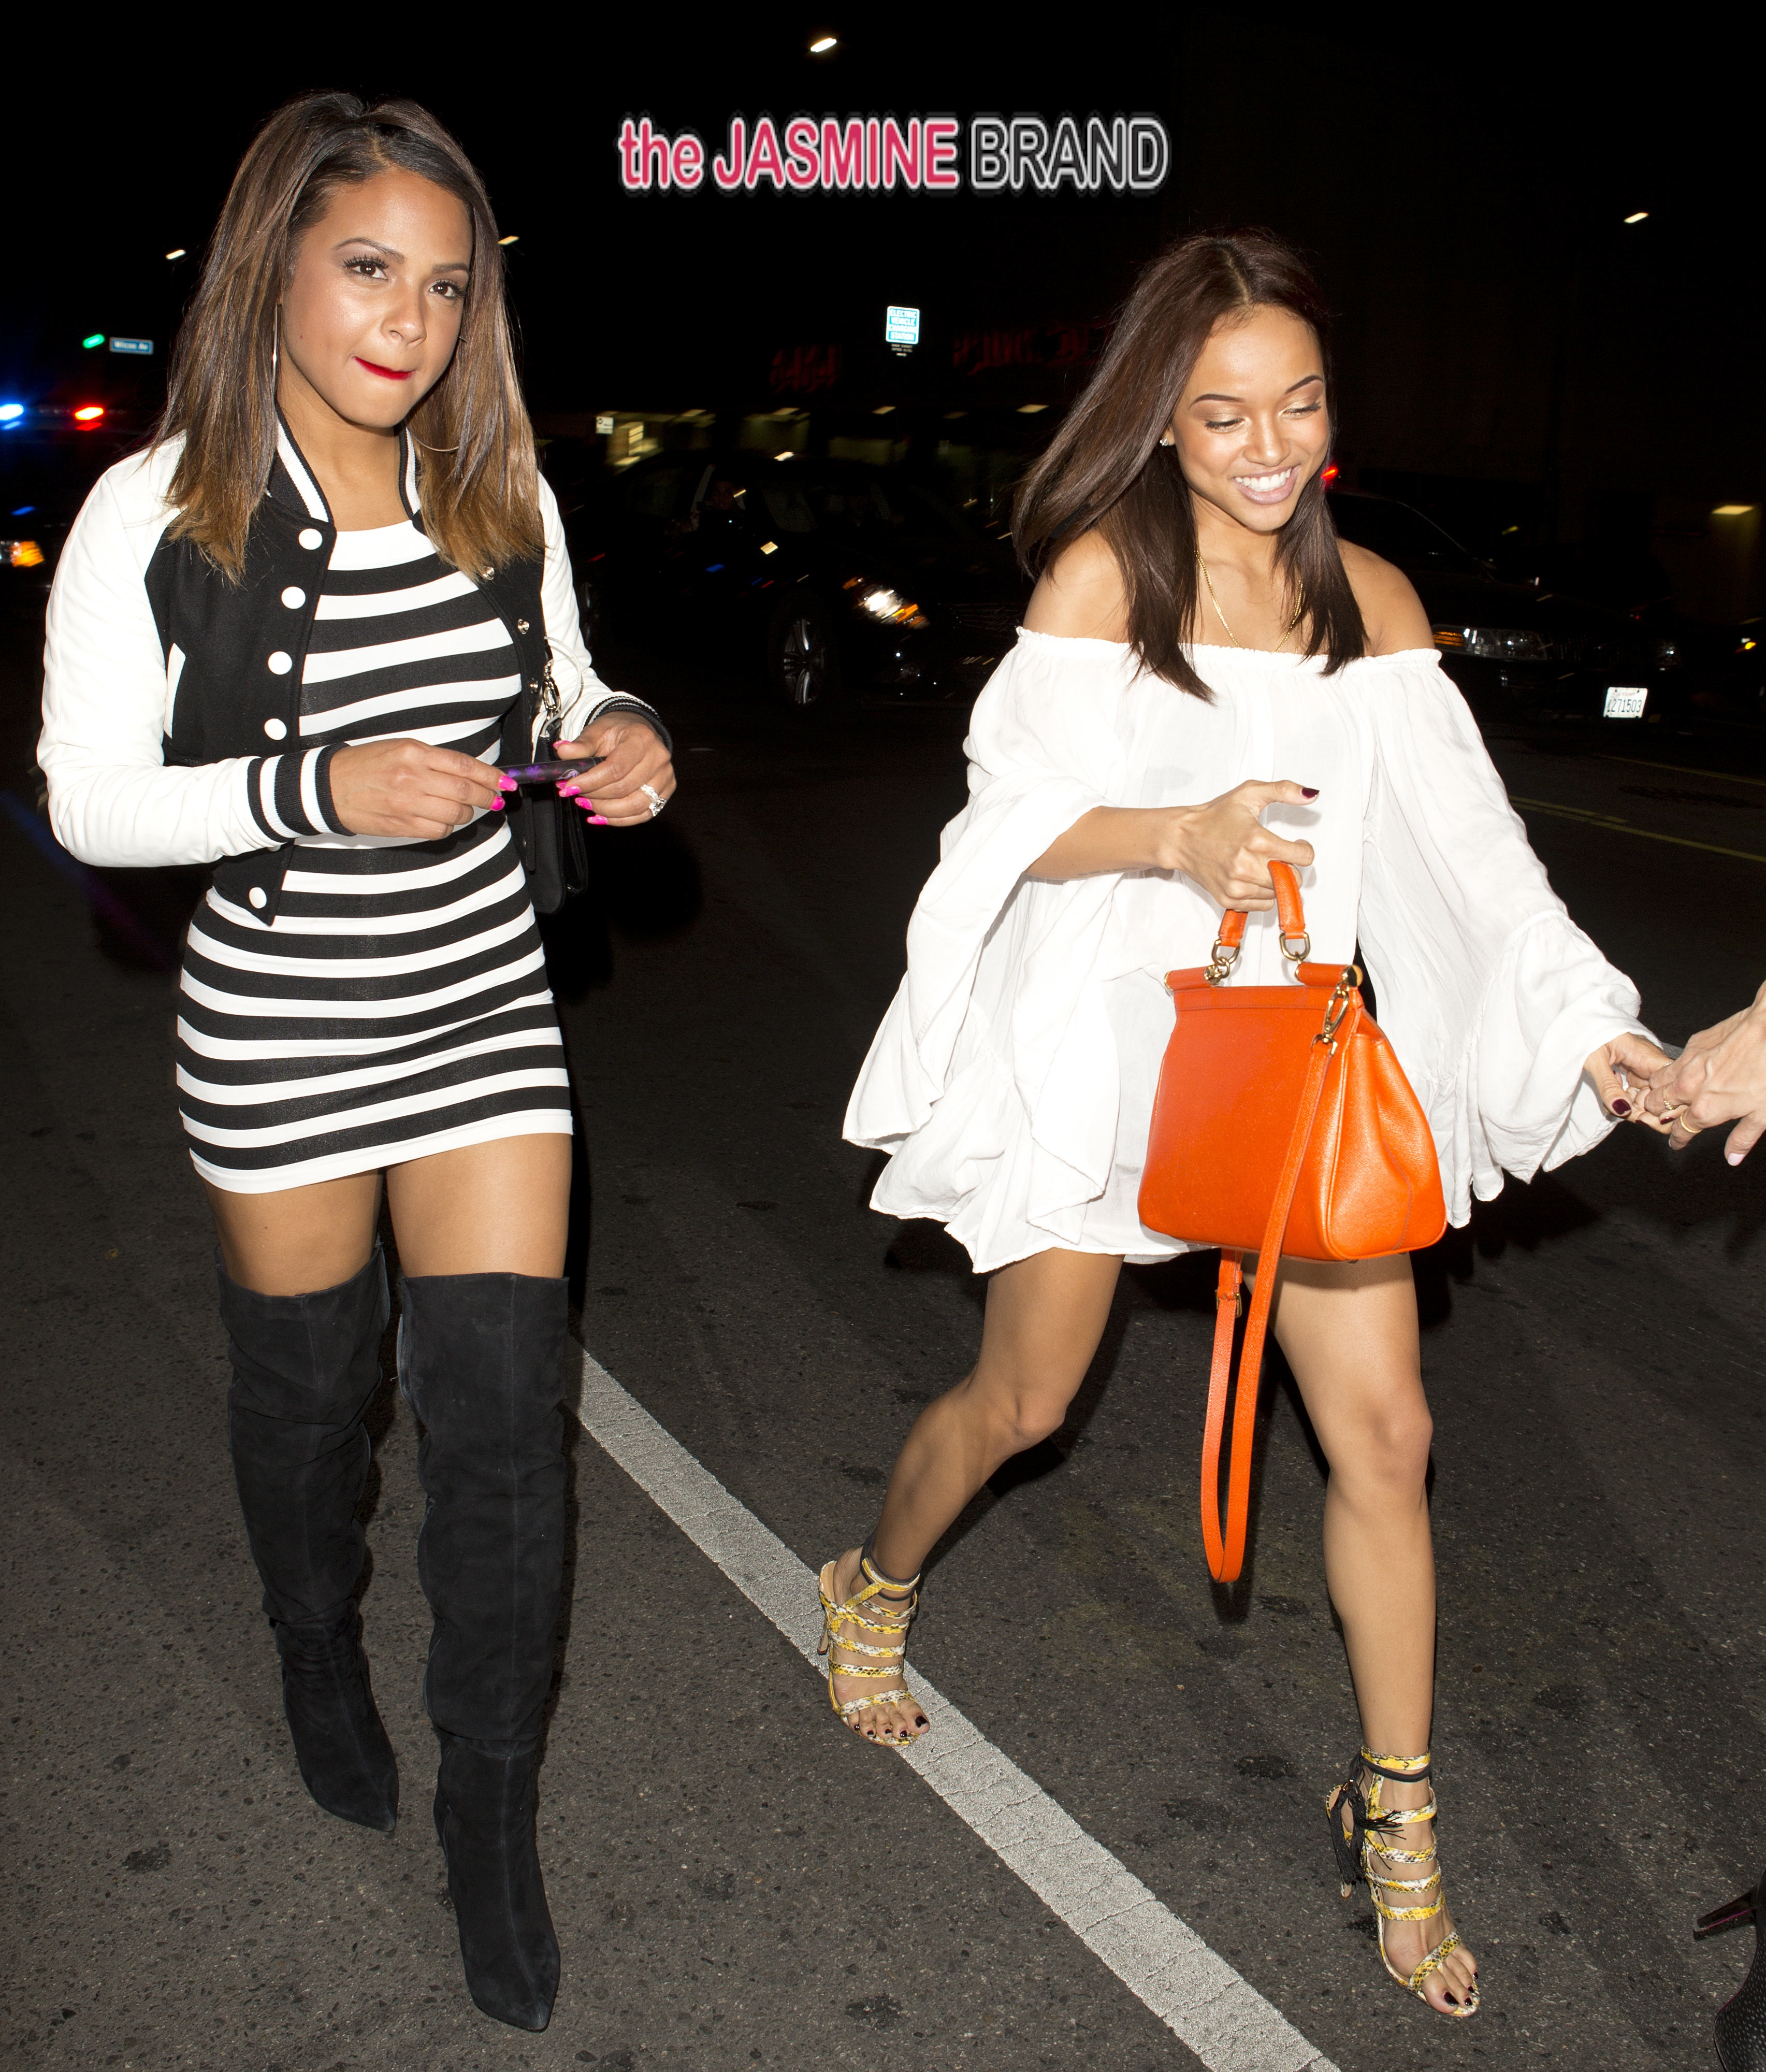 While Chris Brown is in rehab, girlfriend Karrueche Tran goes out clubbing with singer Christina Milian in Hollywood, CA